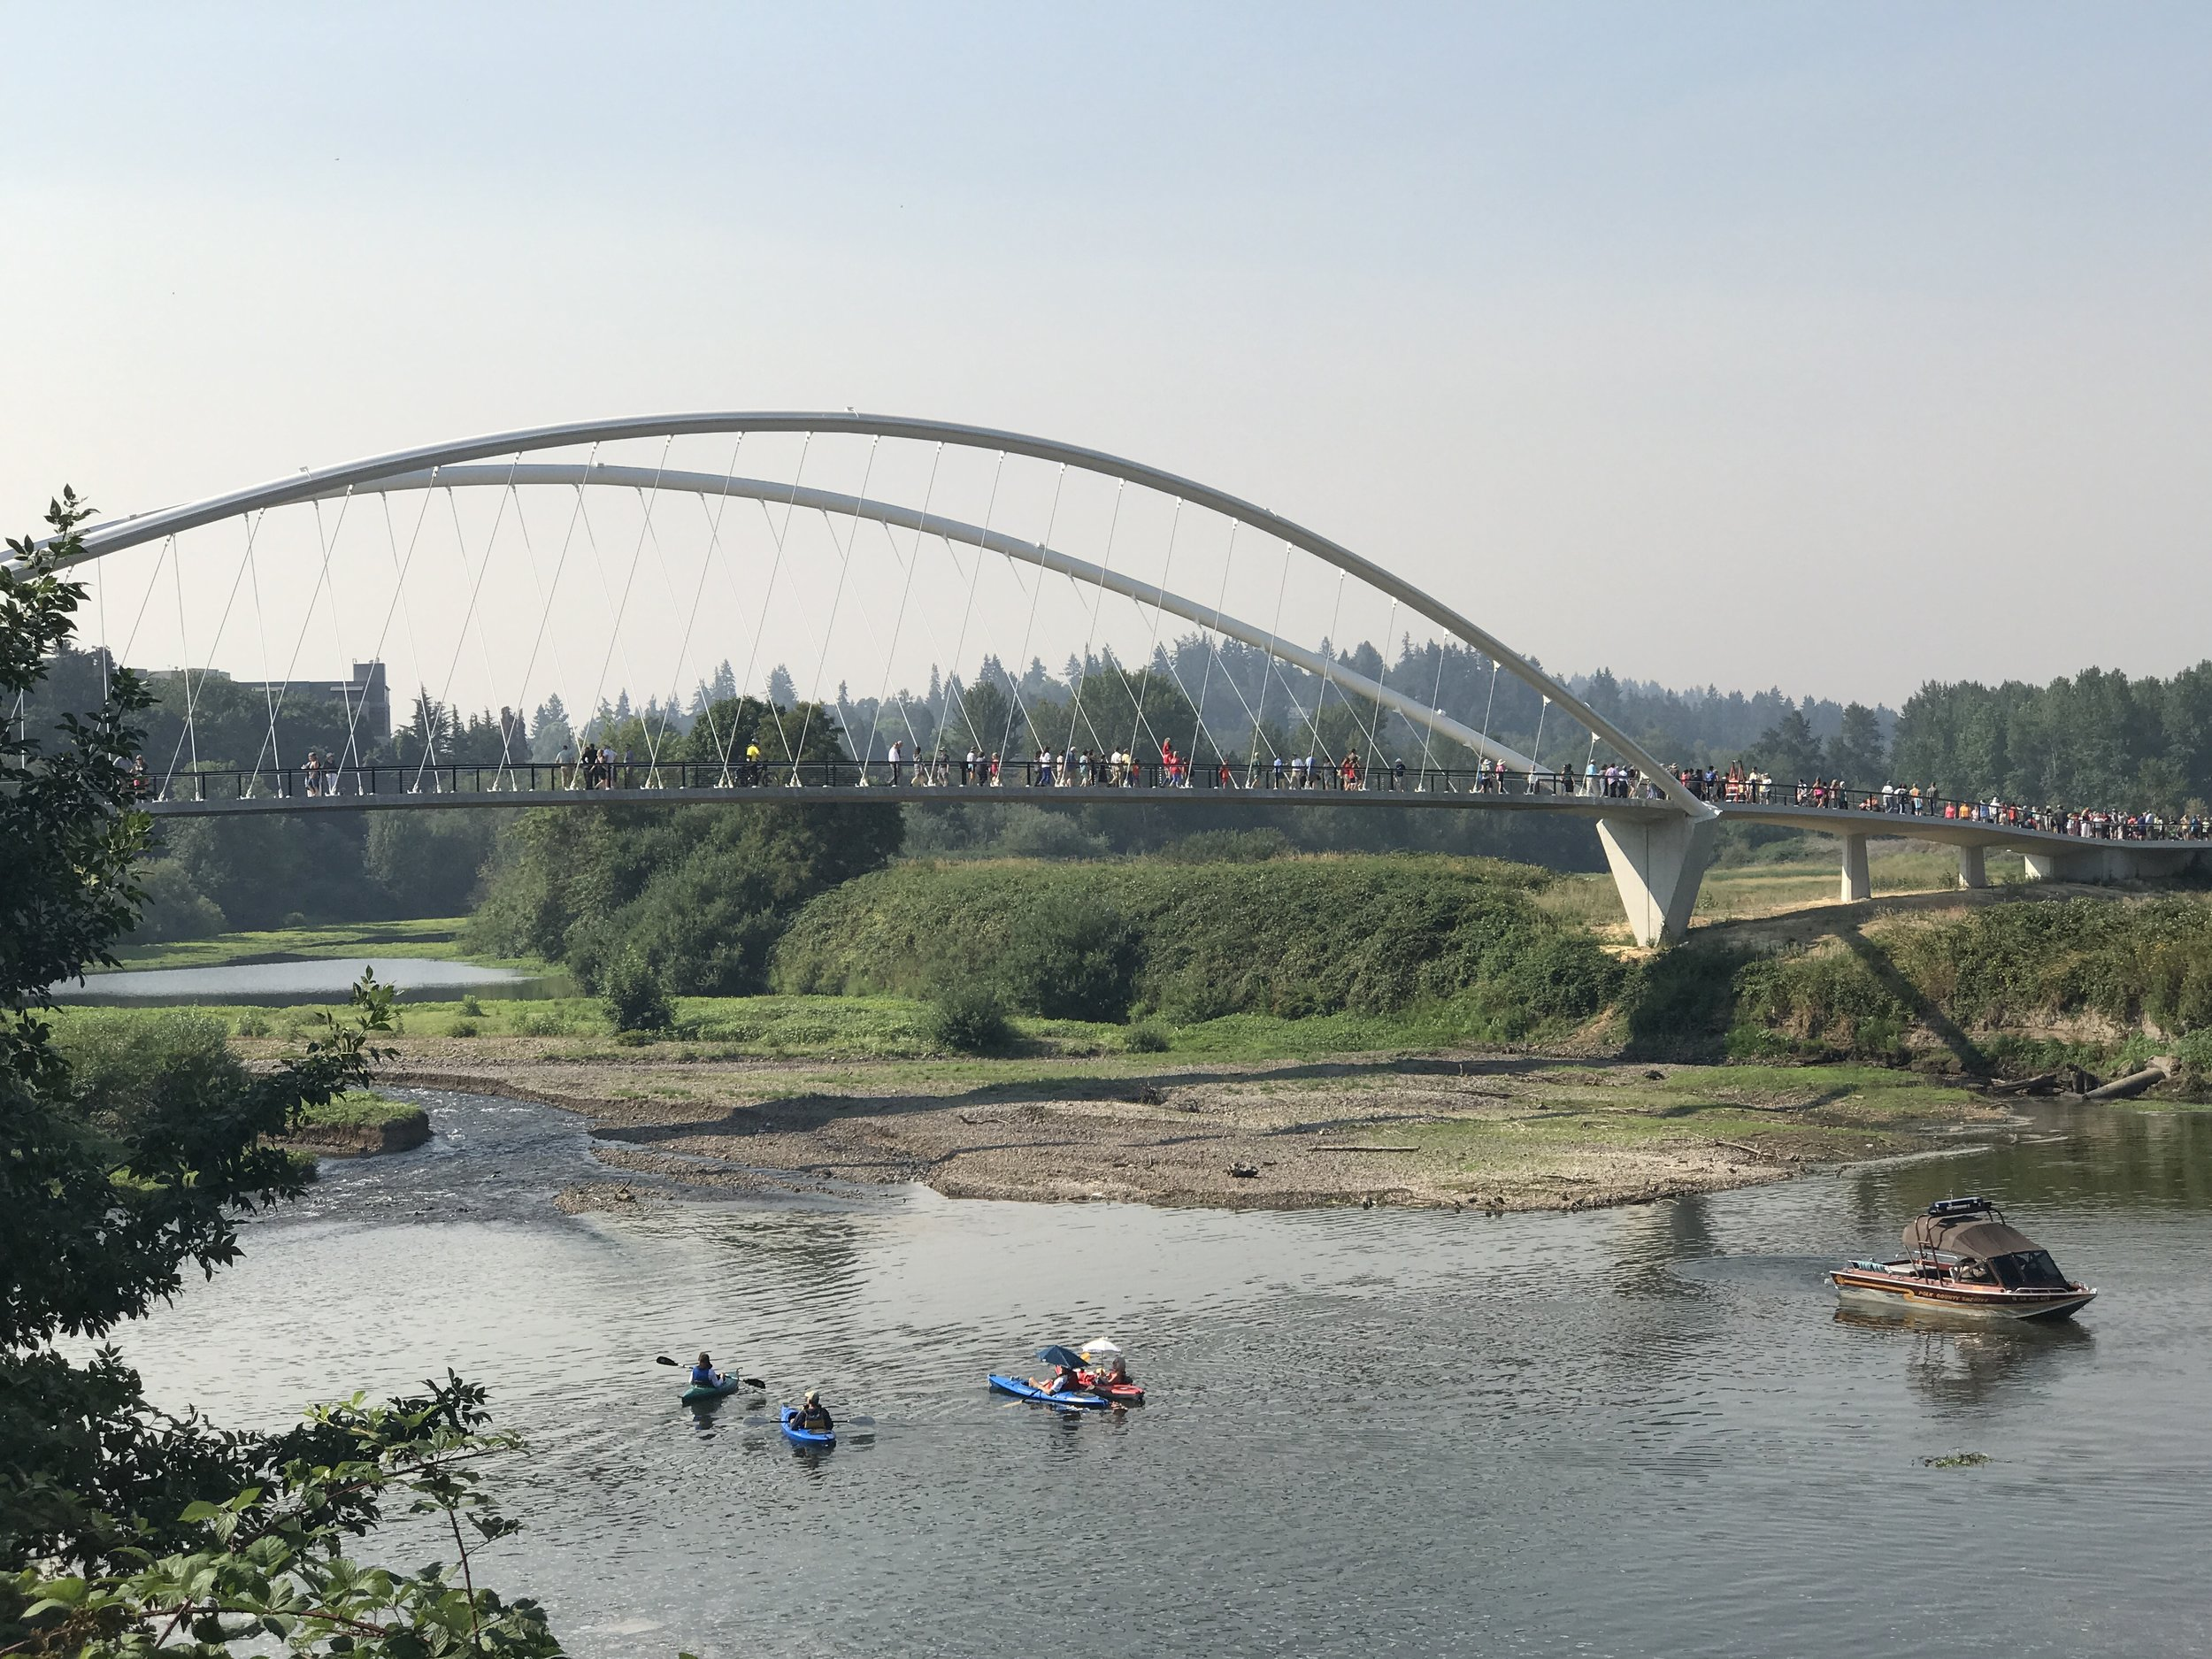 large crowds gathered at a grand opening, kayaks in river, people on suspension bridge